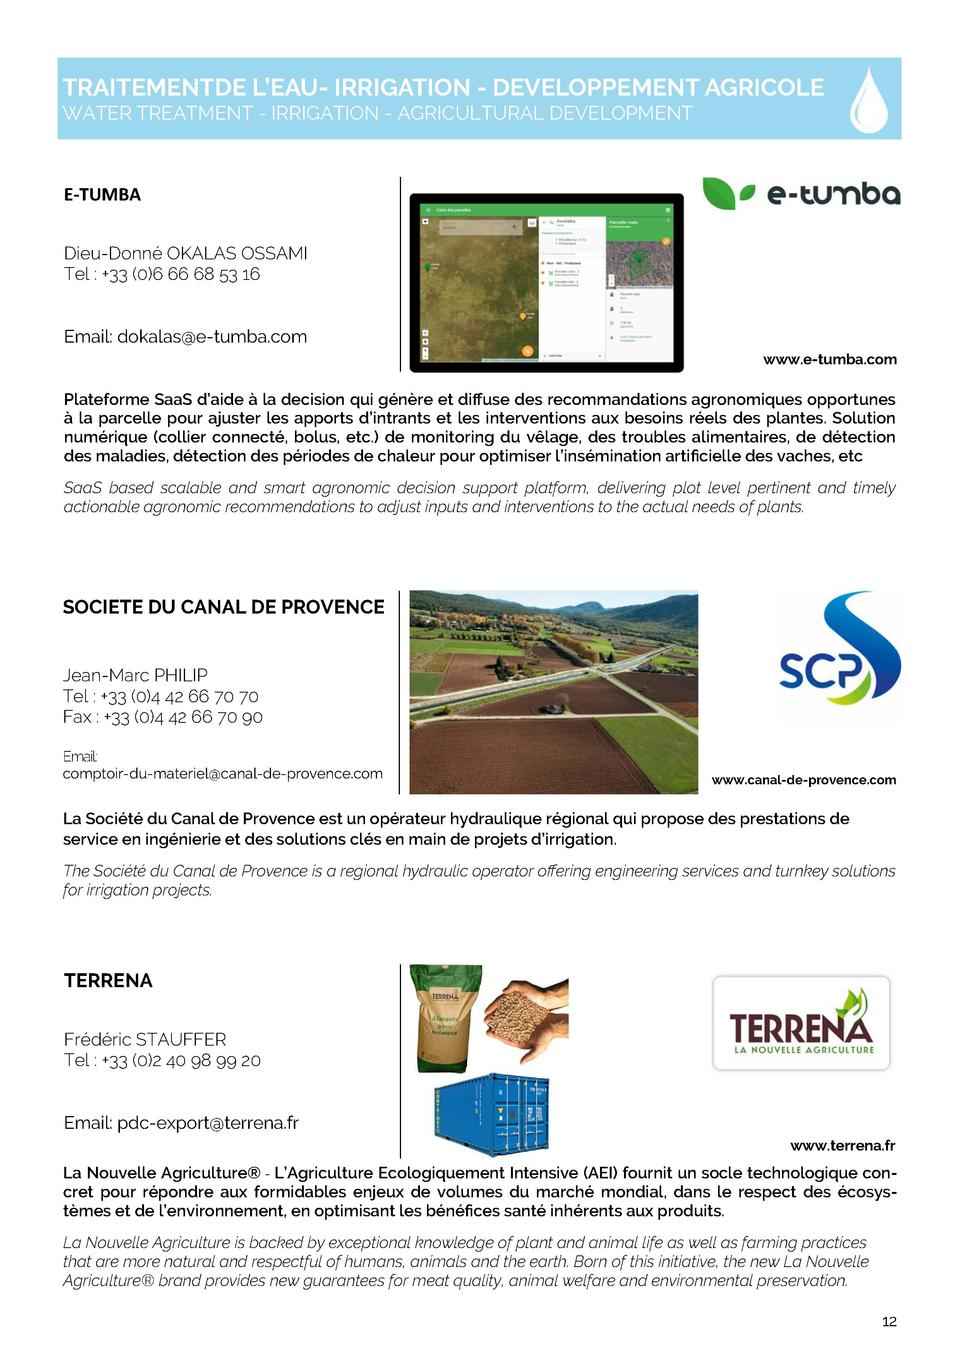 TRAITEMENTDE L   EAU- IRRIGATION - DEVELOPPEMENT AGRICOLE WATER TREATMENT - IRRIGATION - AGRICULTURAL DEVELOPMENT  E   TUM...